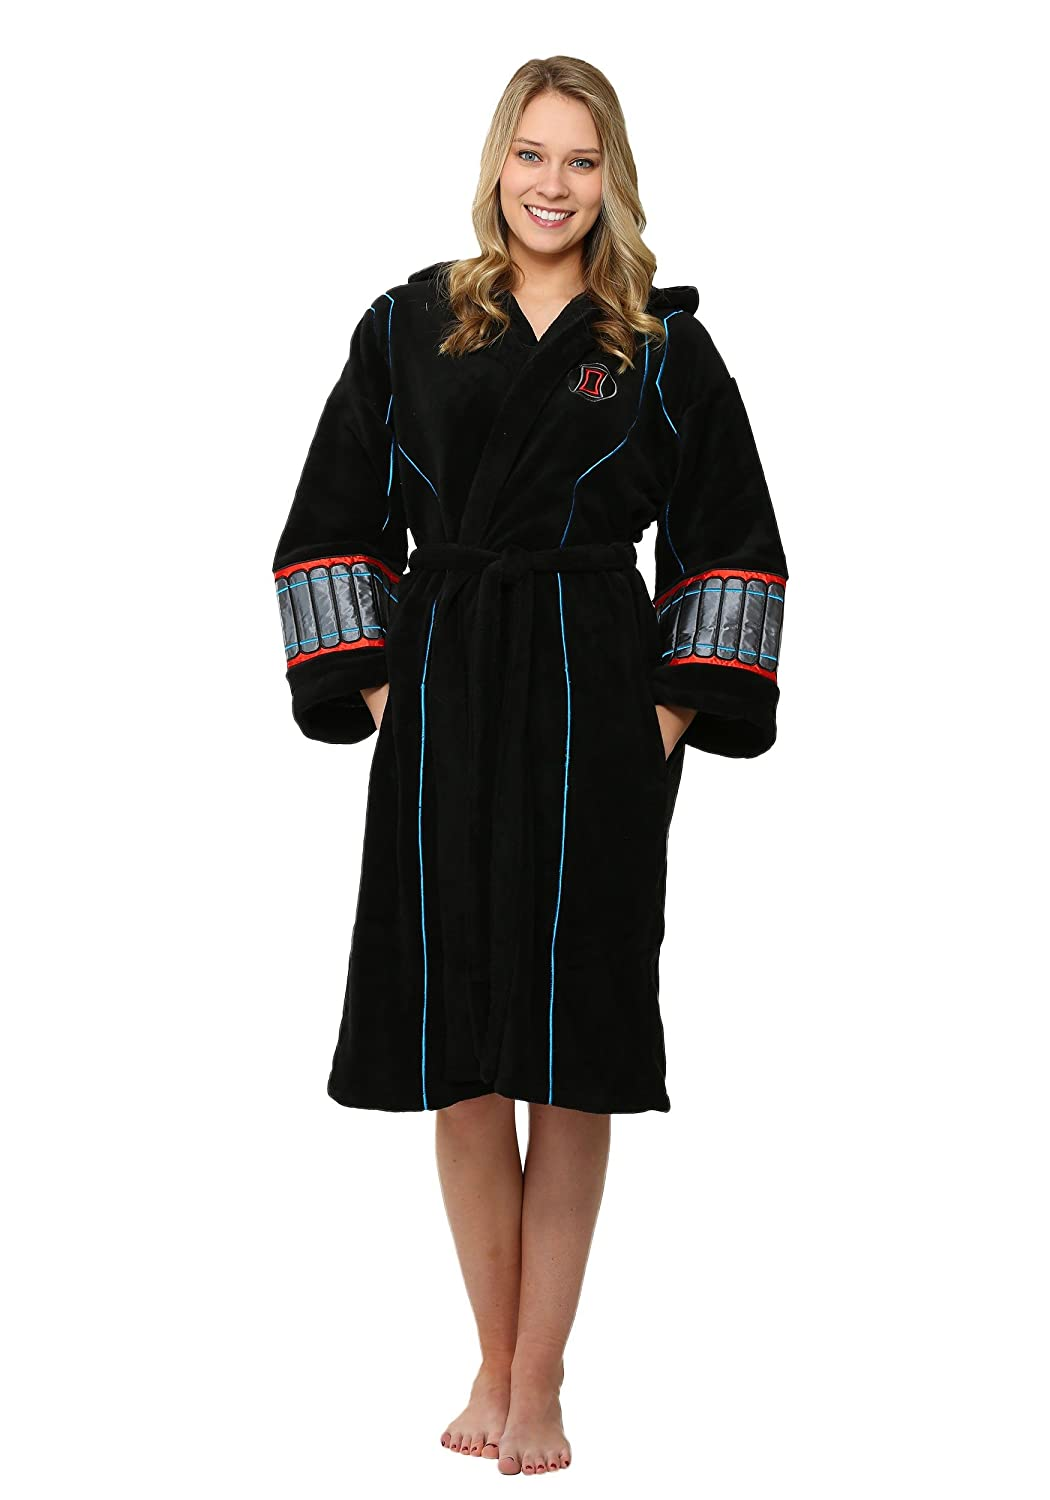 Marvel Women's Black Widow Bathrobe 12010-Blk